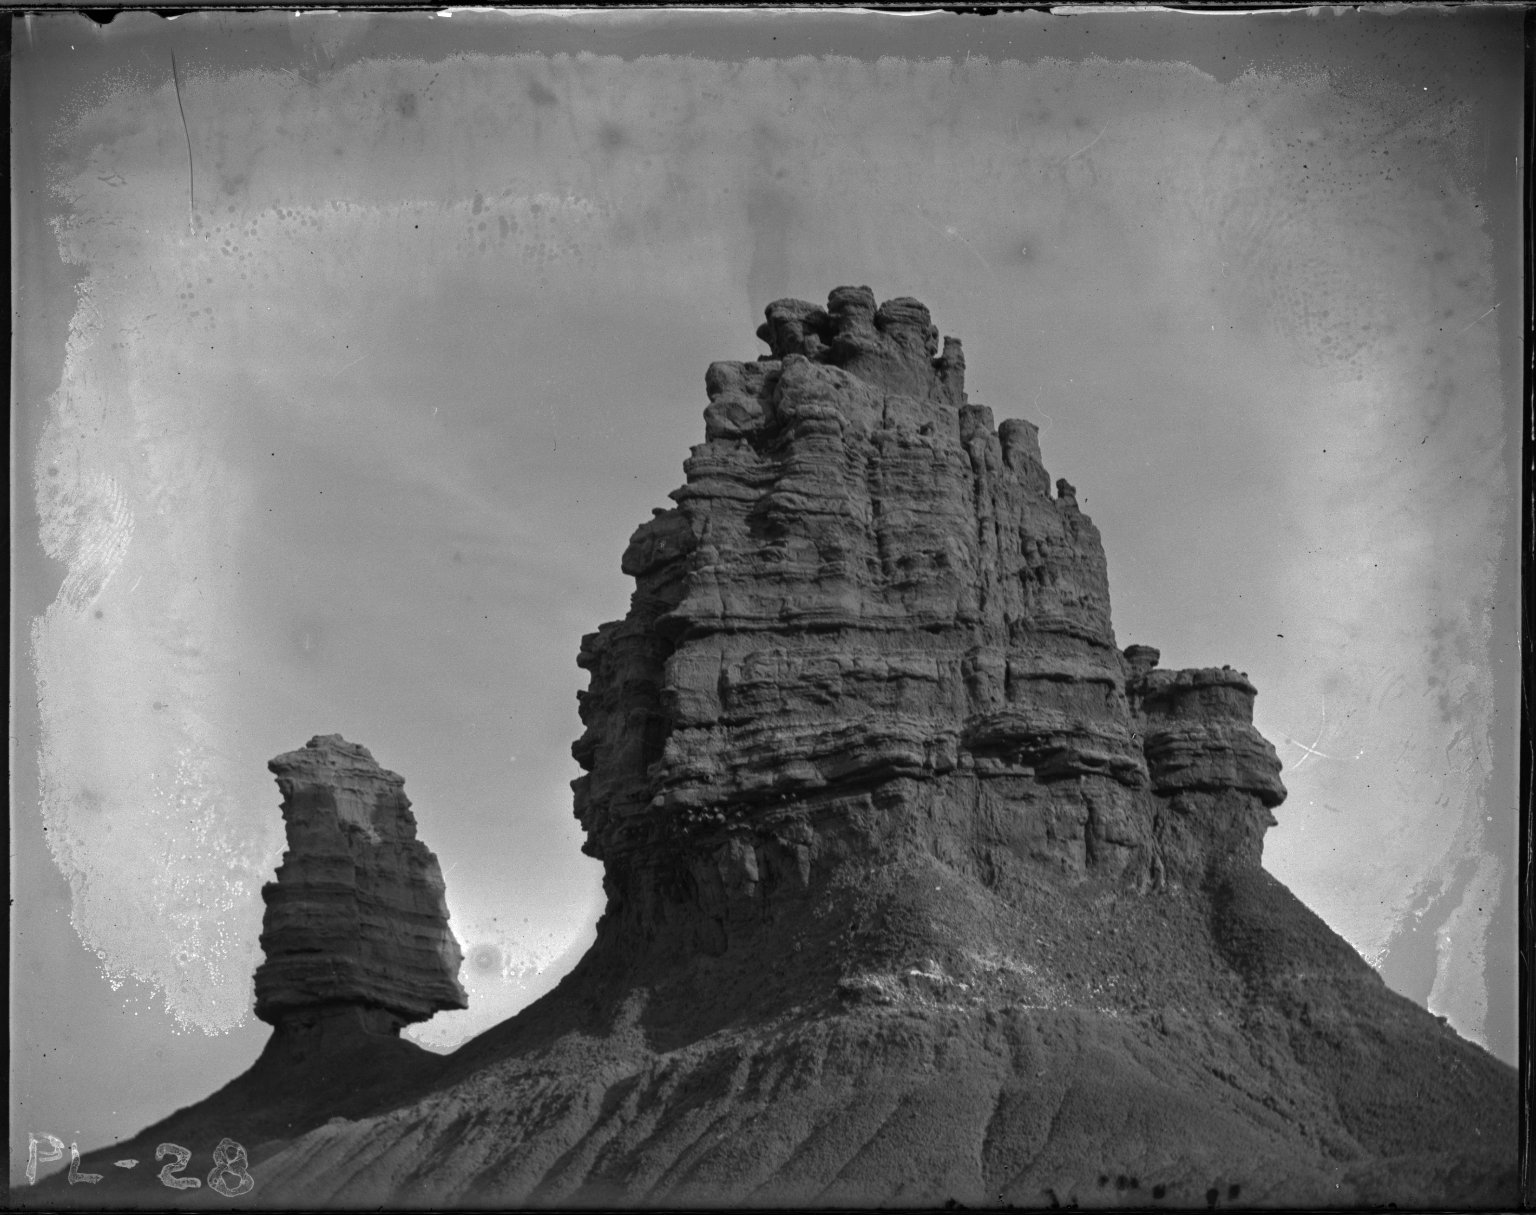 Buttes seen going to Supai and Hopi